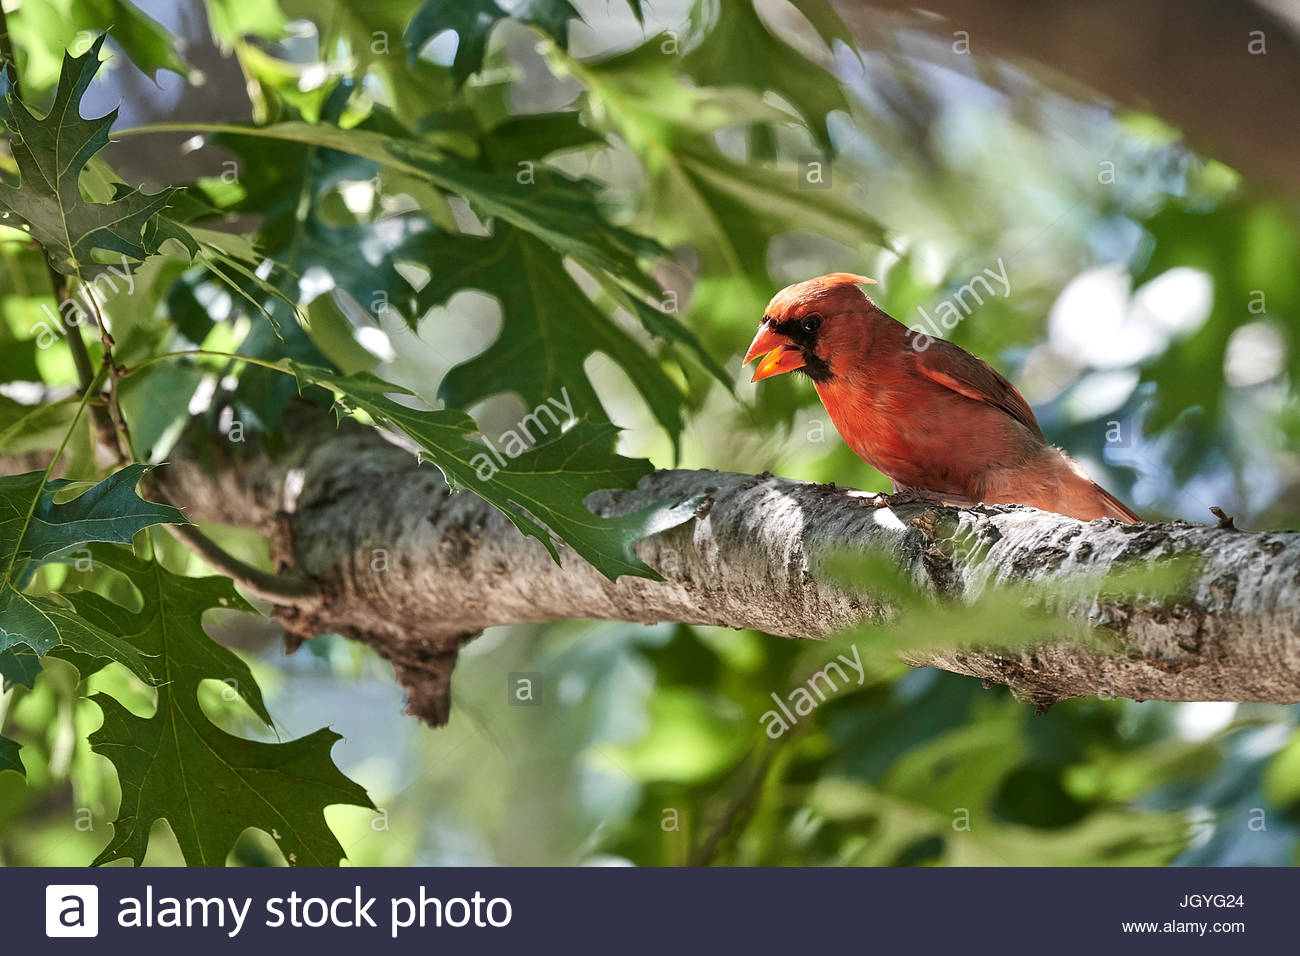 Red northern cardinal cawing in tree, leaves in background with bokeh - Stock Image